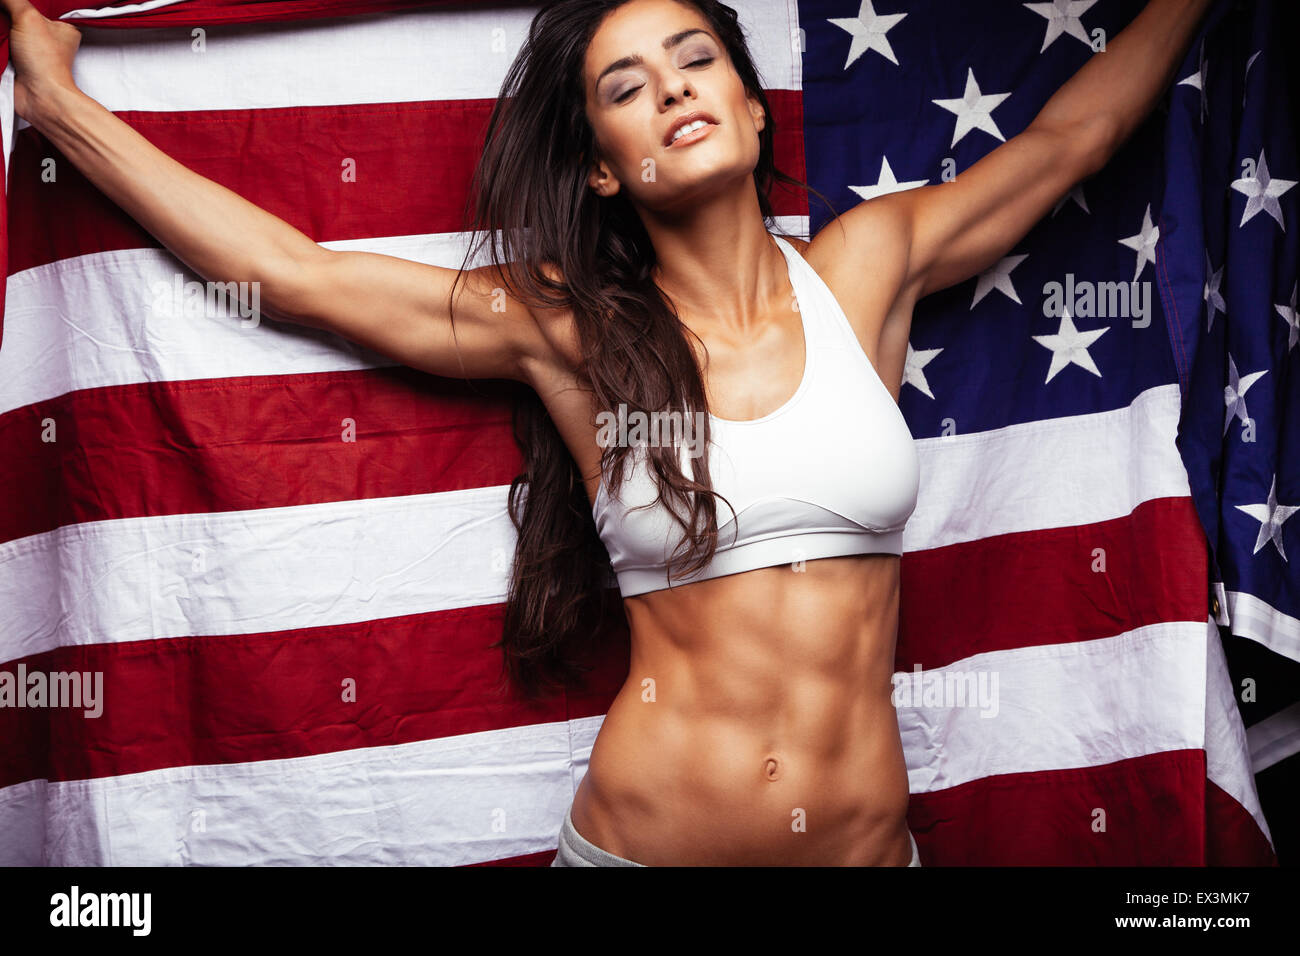 Sporty young woman holding American flag. Fitness female with perfect abs. - Stock Image